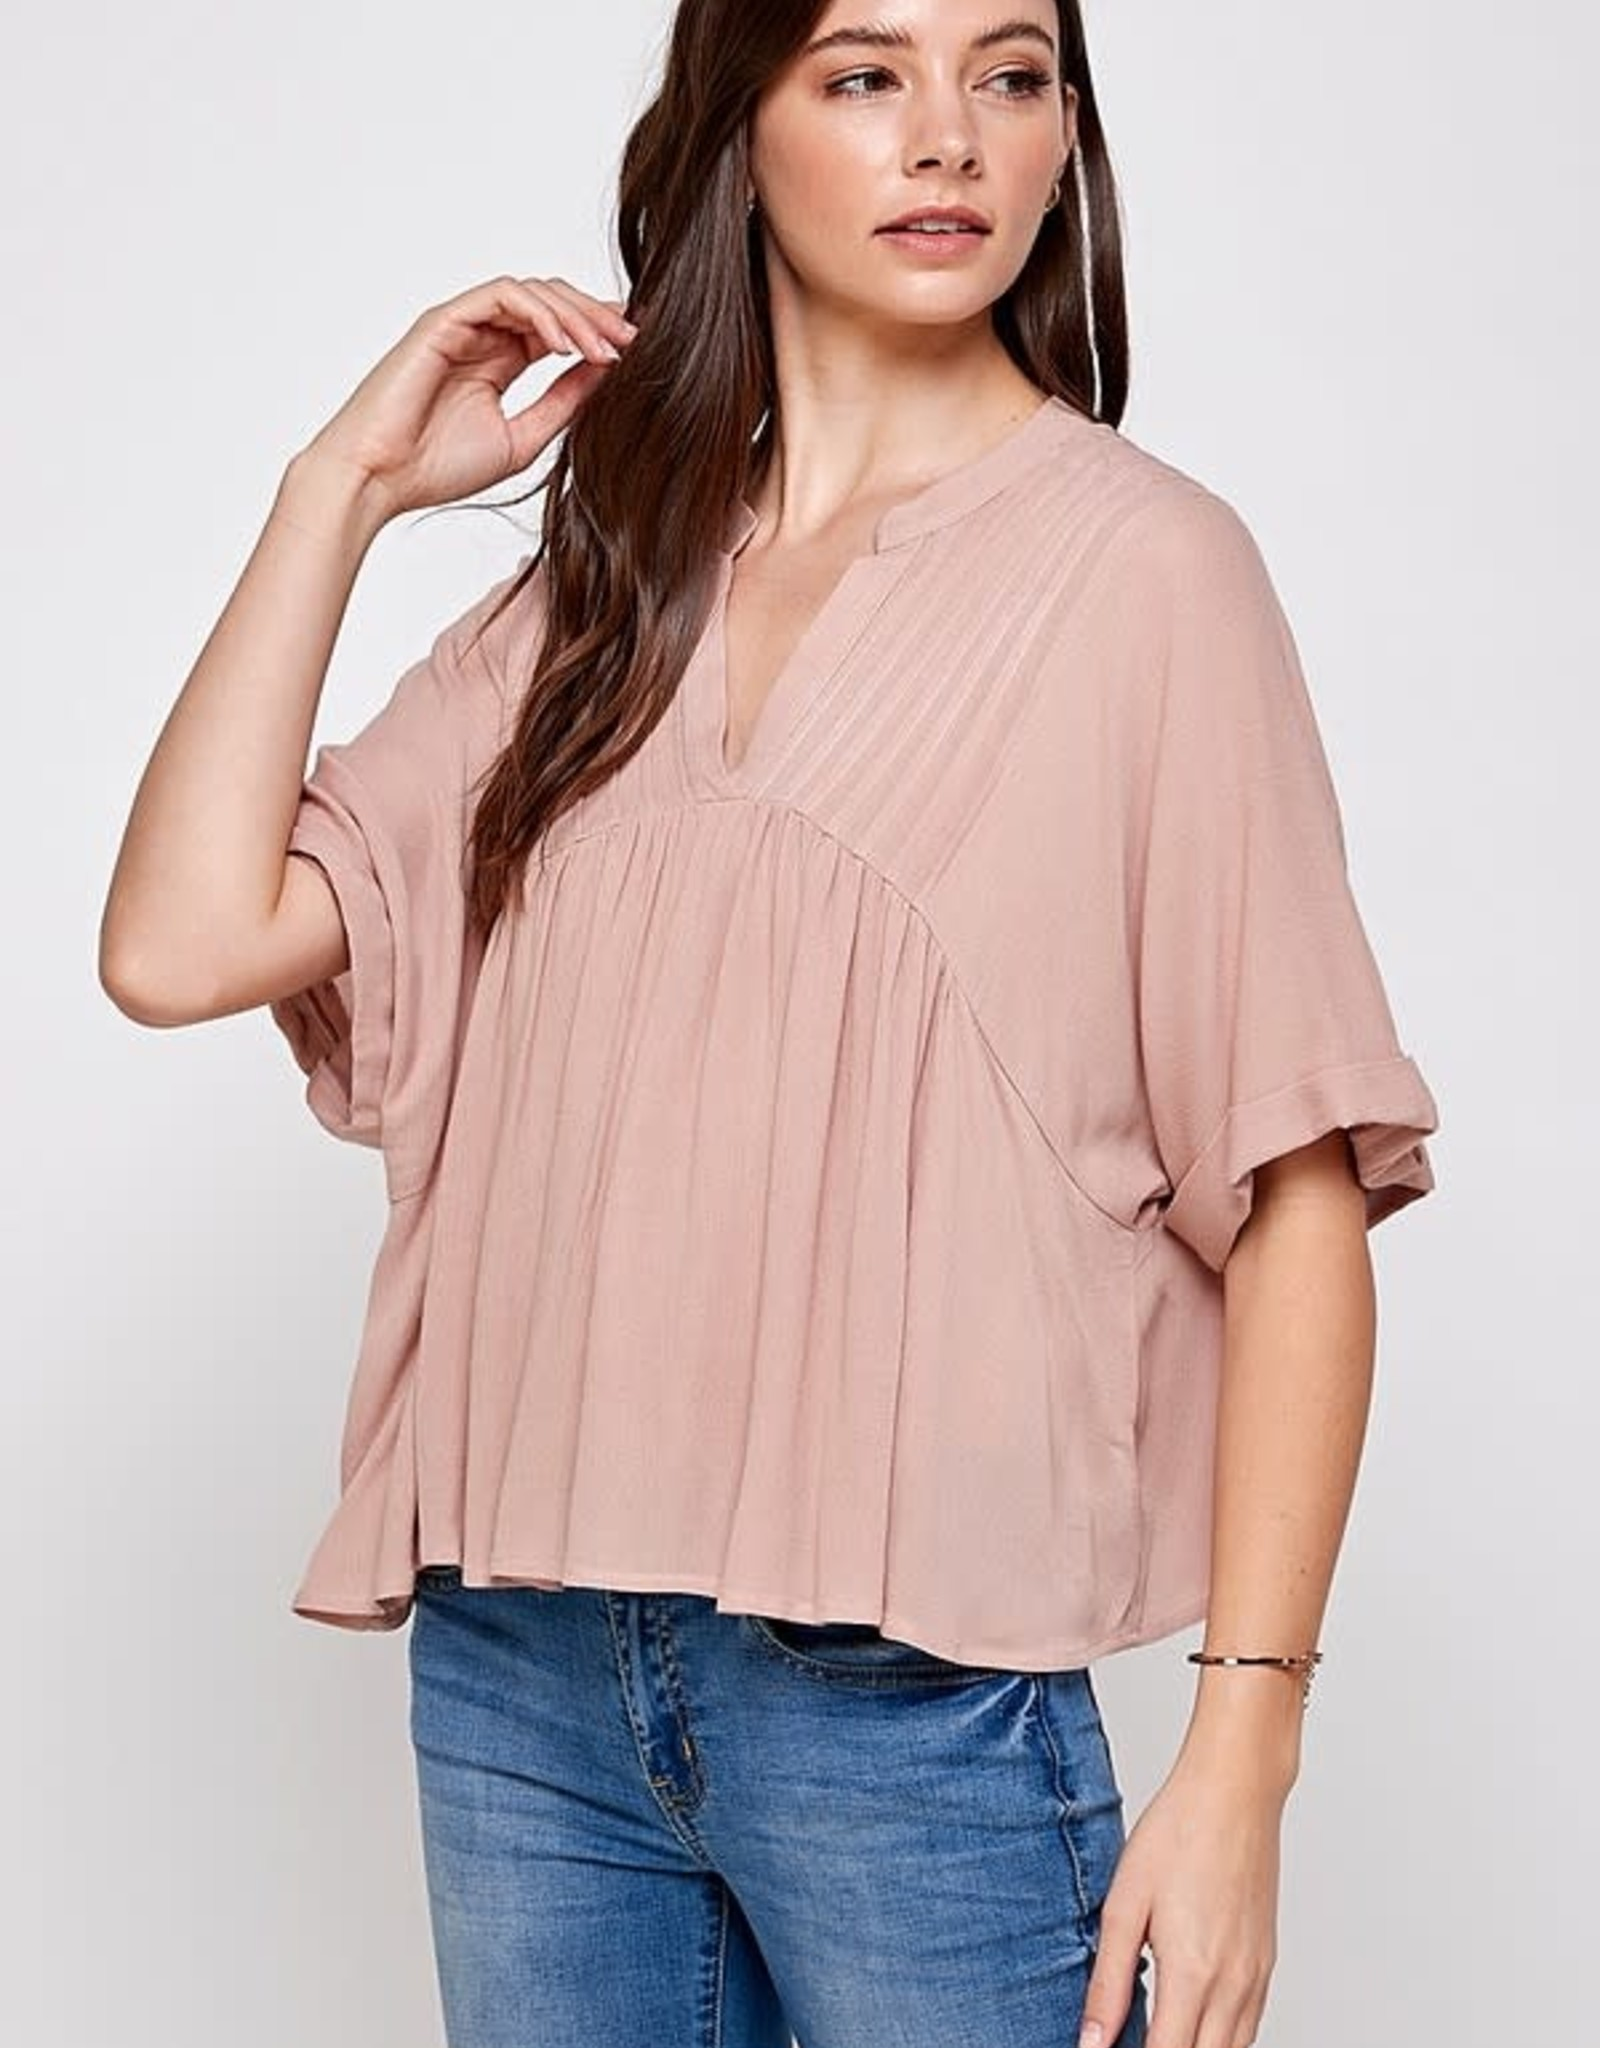 Miss Bliss Solid Pin Tuck Folded Cuff Top- Taupe